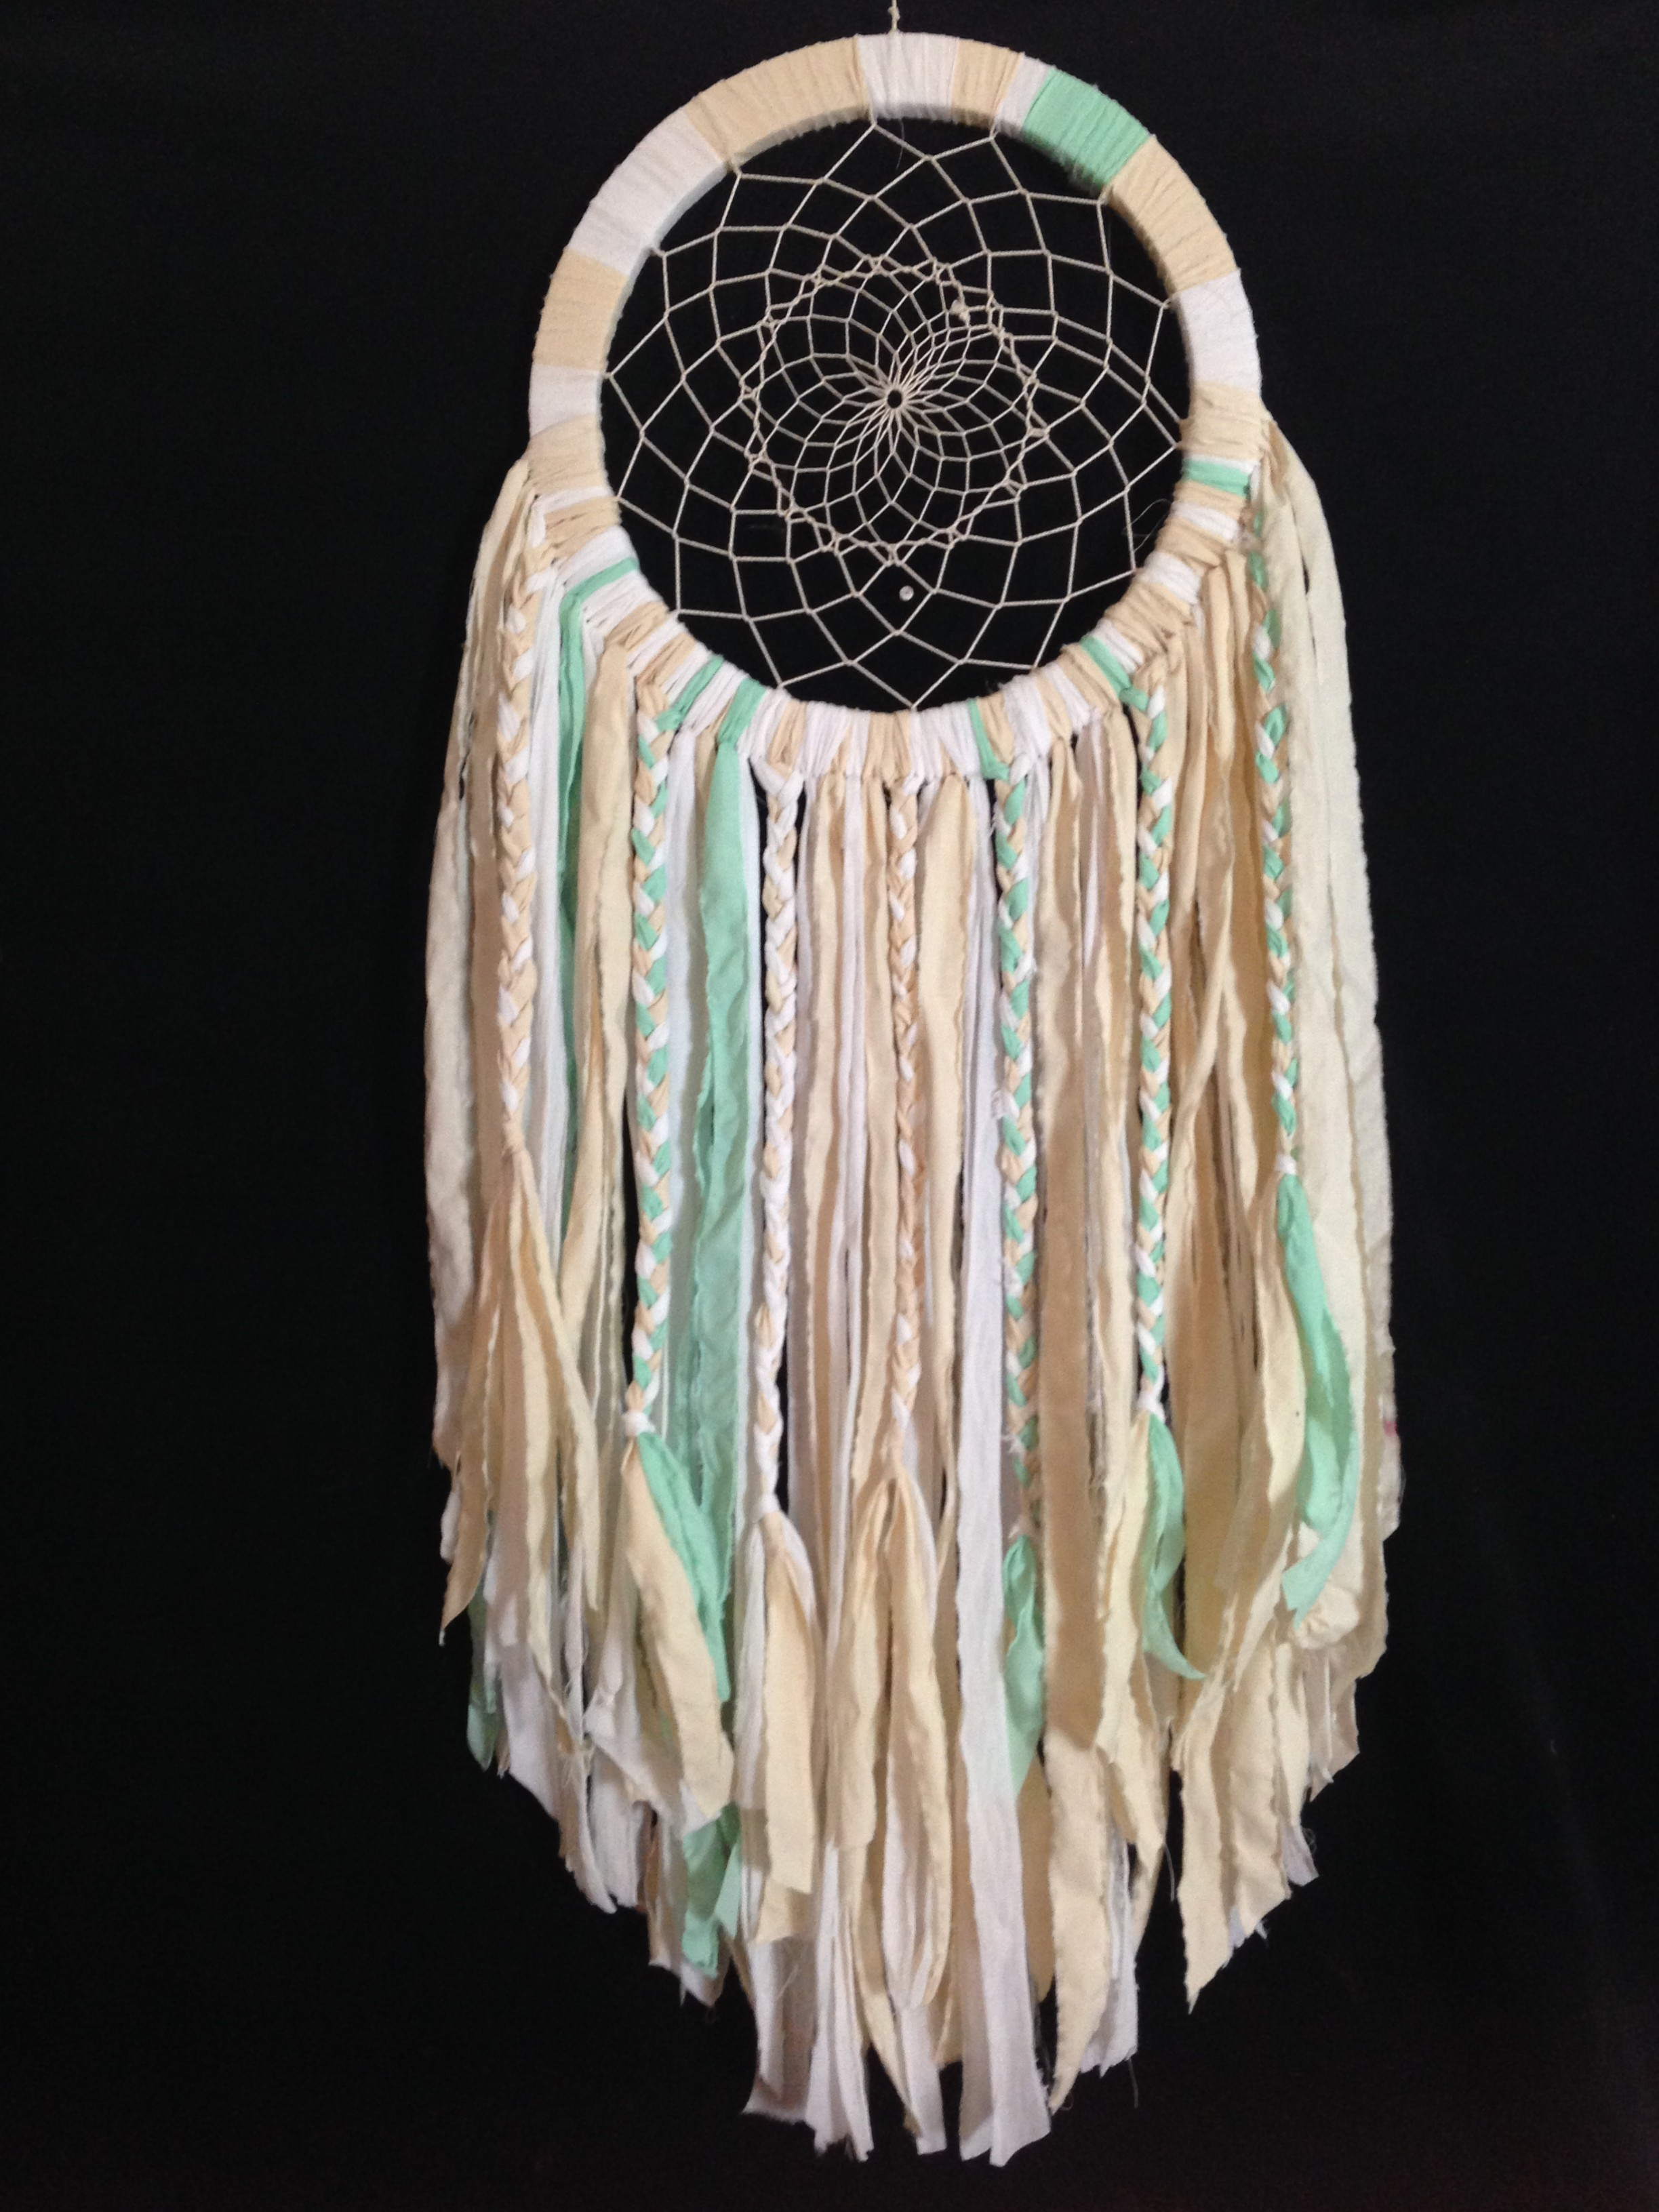 Where To Buy Dream Catchers In Nyc The Most Gorgeous Dream Catchers We've Ever Seen GirlieGirl Army 35